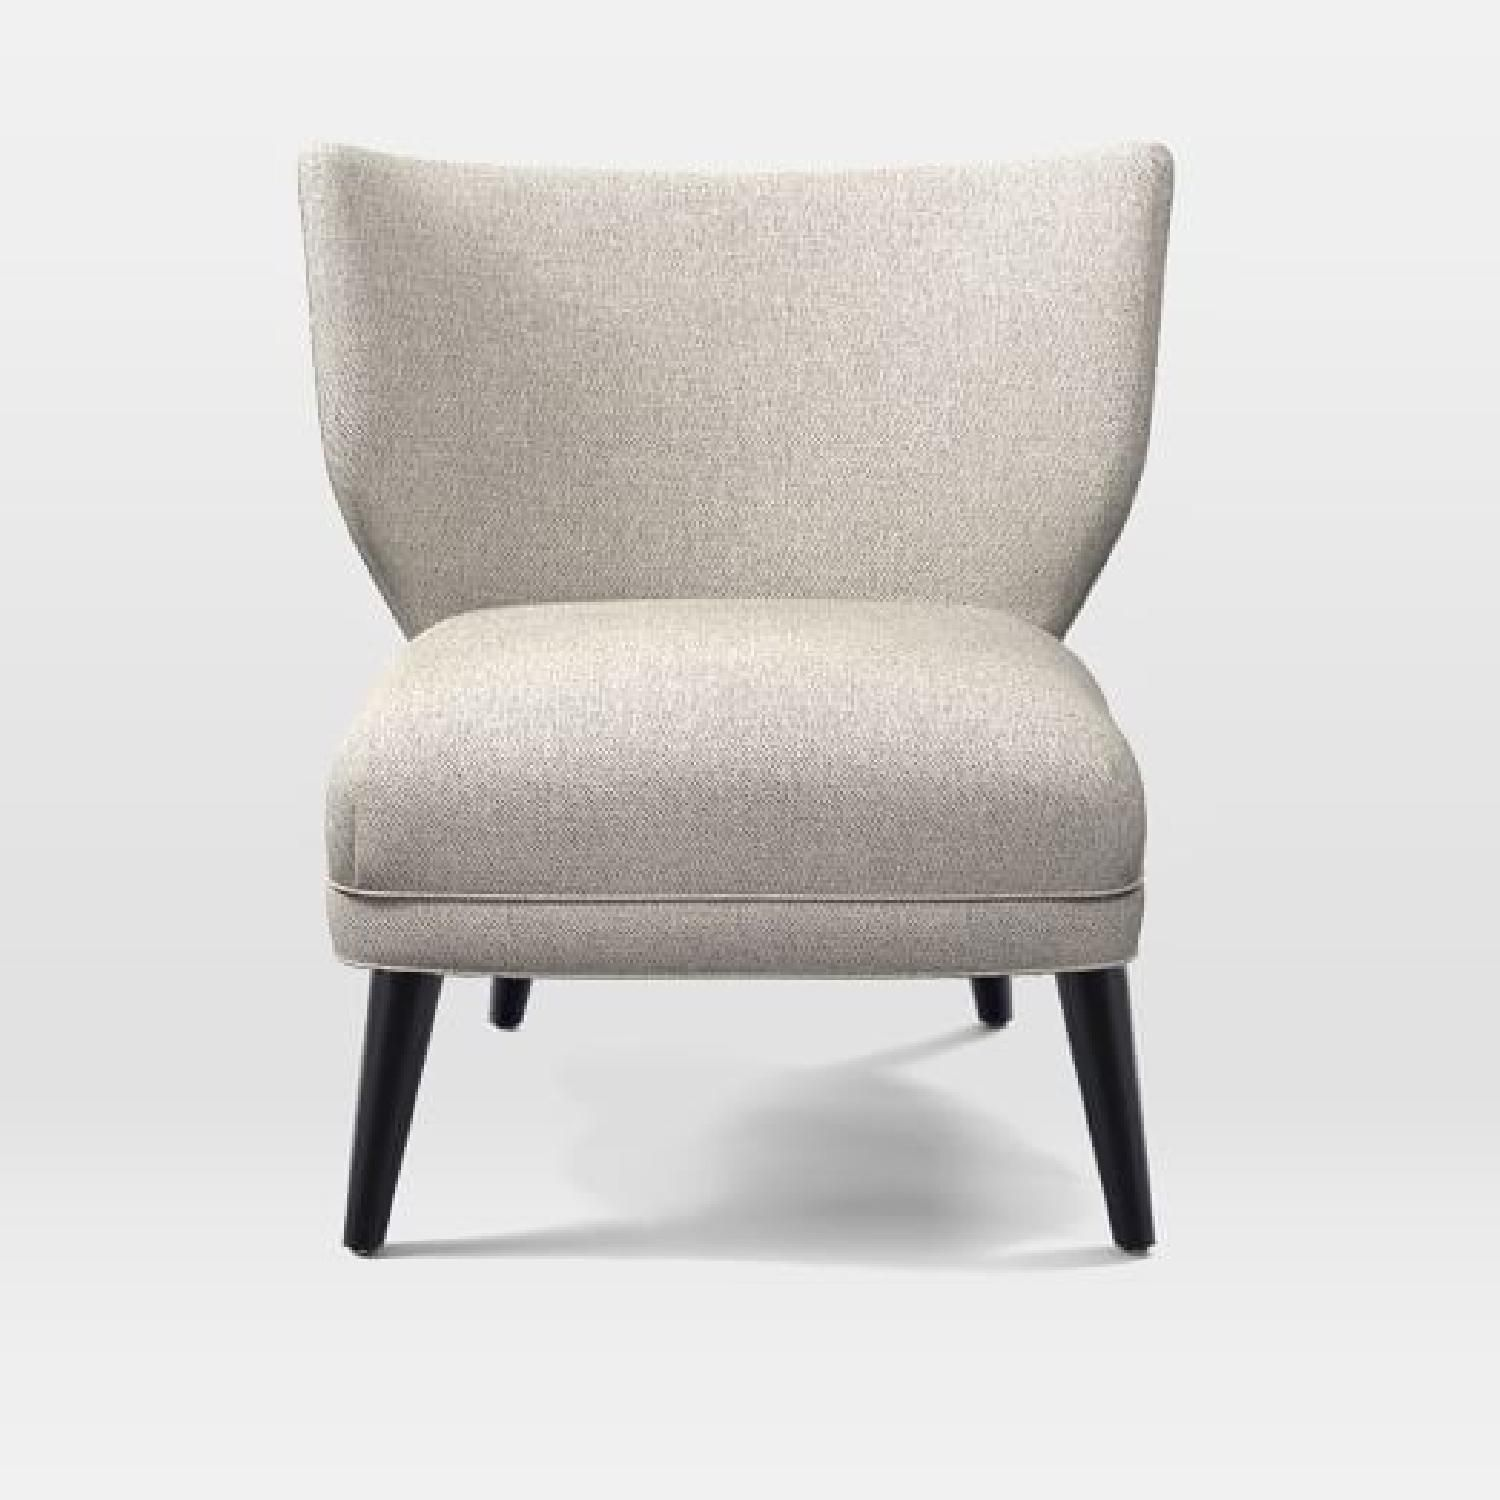 West Elm Retro Wing Chair In Twill Stone